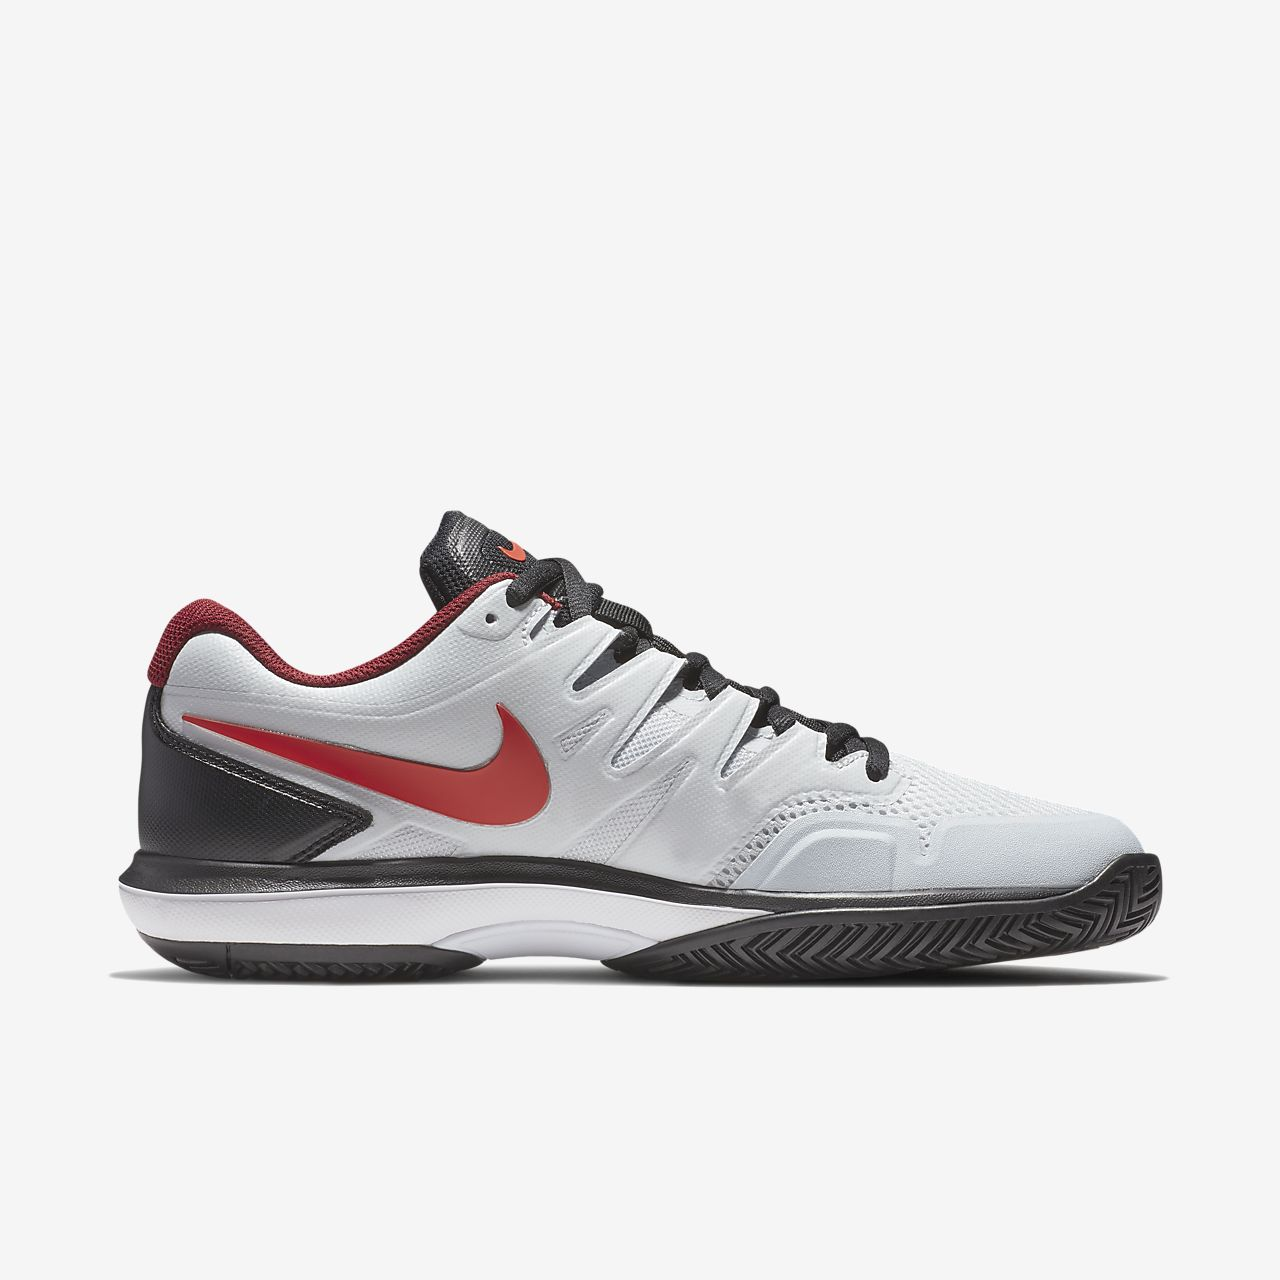 ... Nike Air Zoom Prestige HC Men's Tennis Shoe